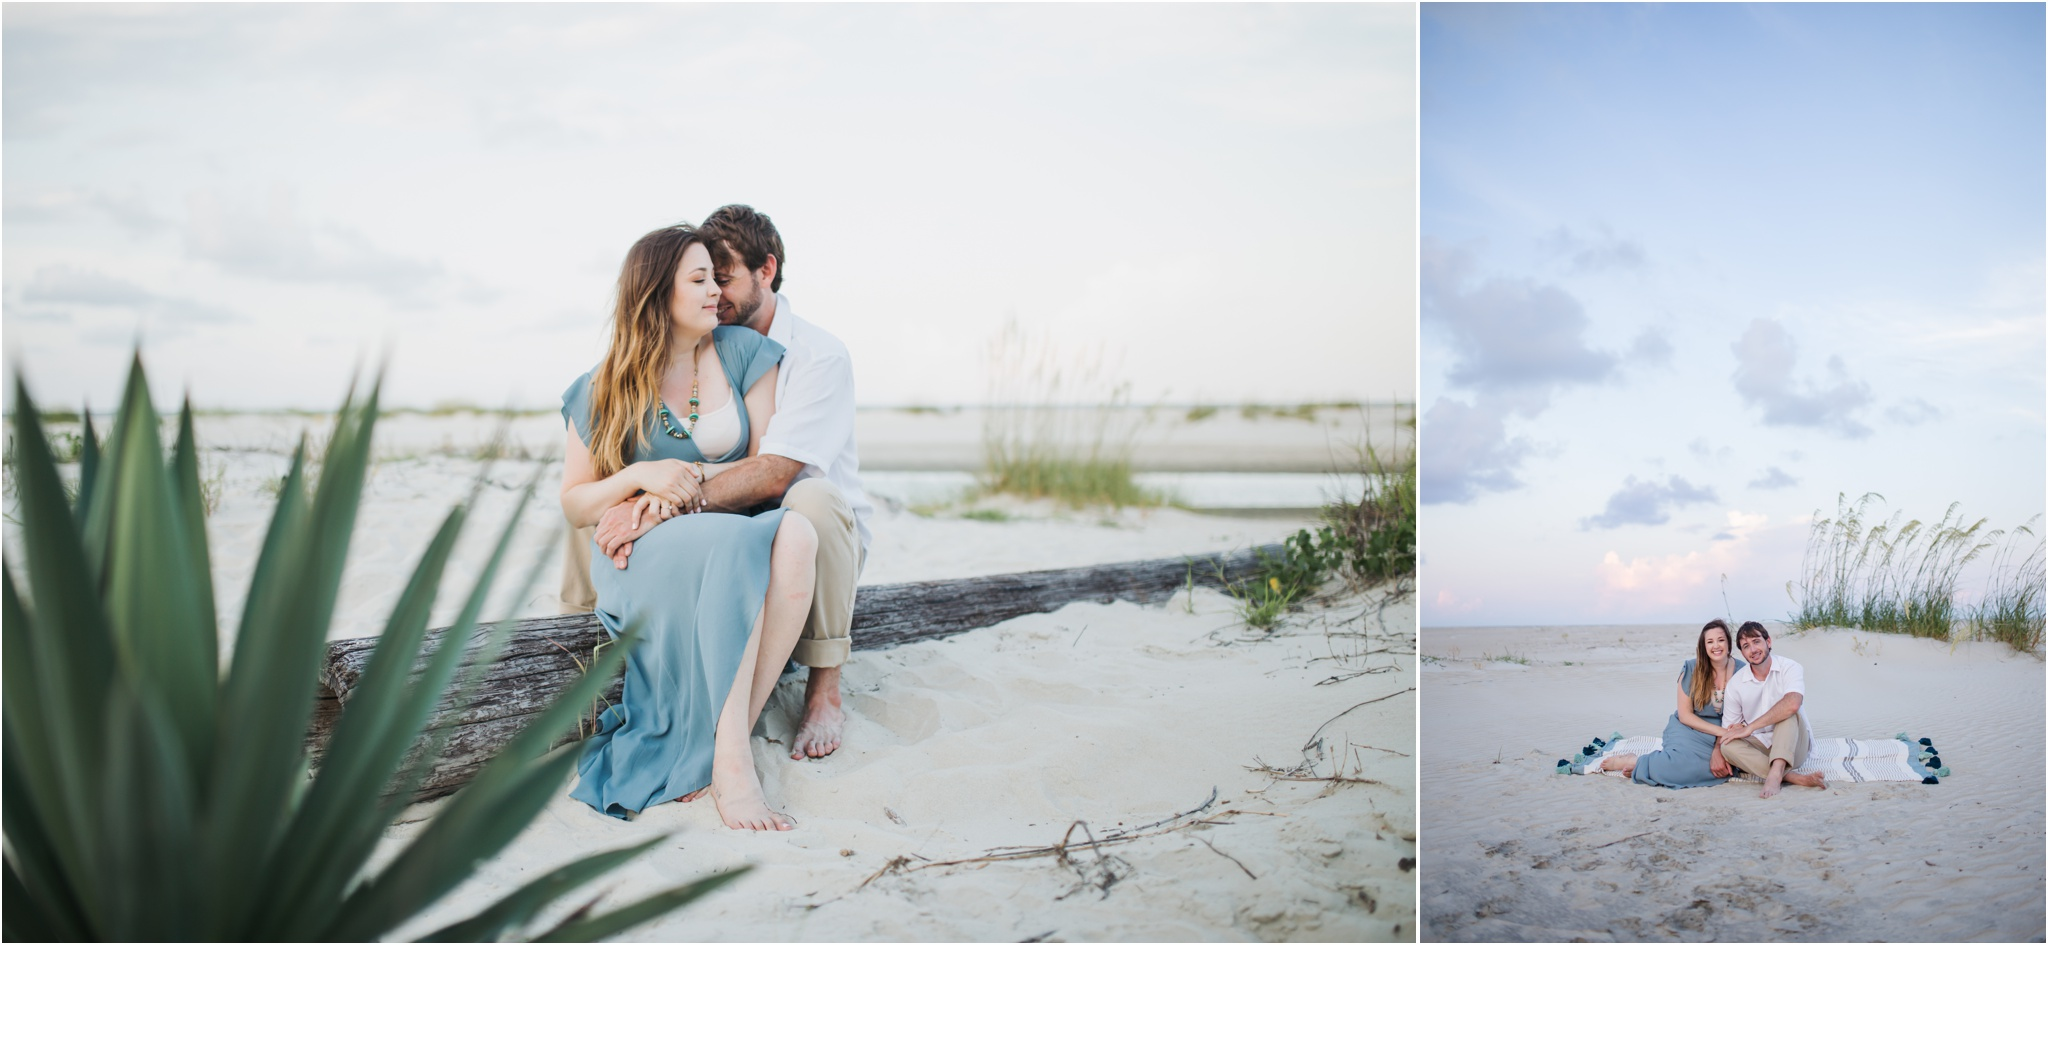 Rainey_Gregg_Photography_St._Simons_Island_Georgia_California_Wedding_Portrait_Photography_1432.jpg